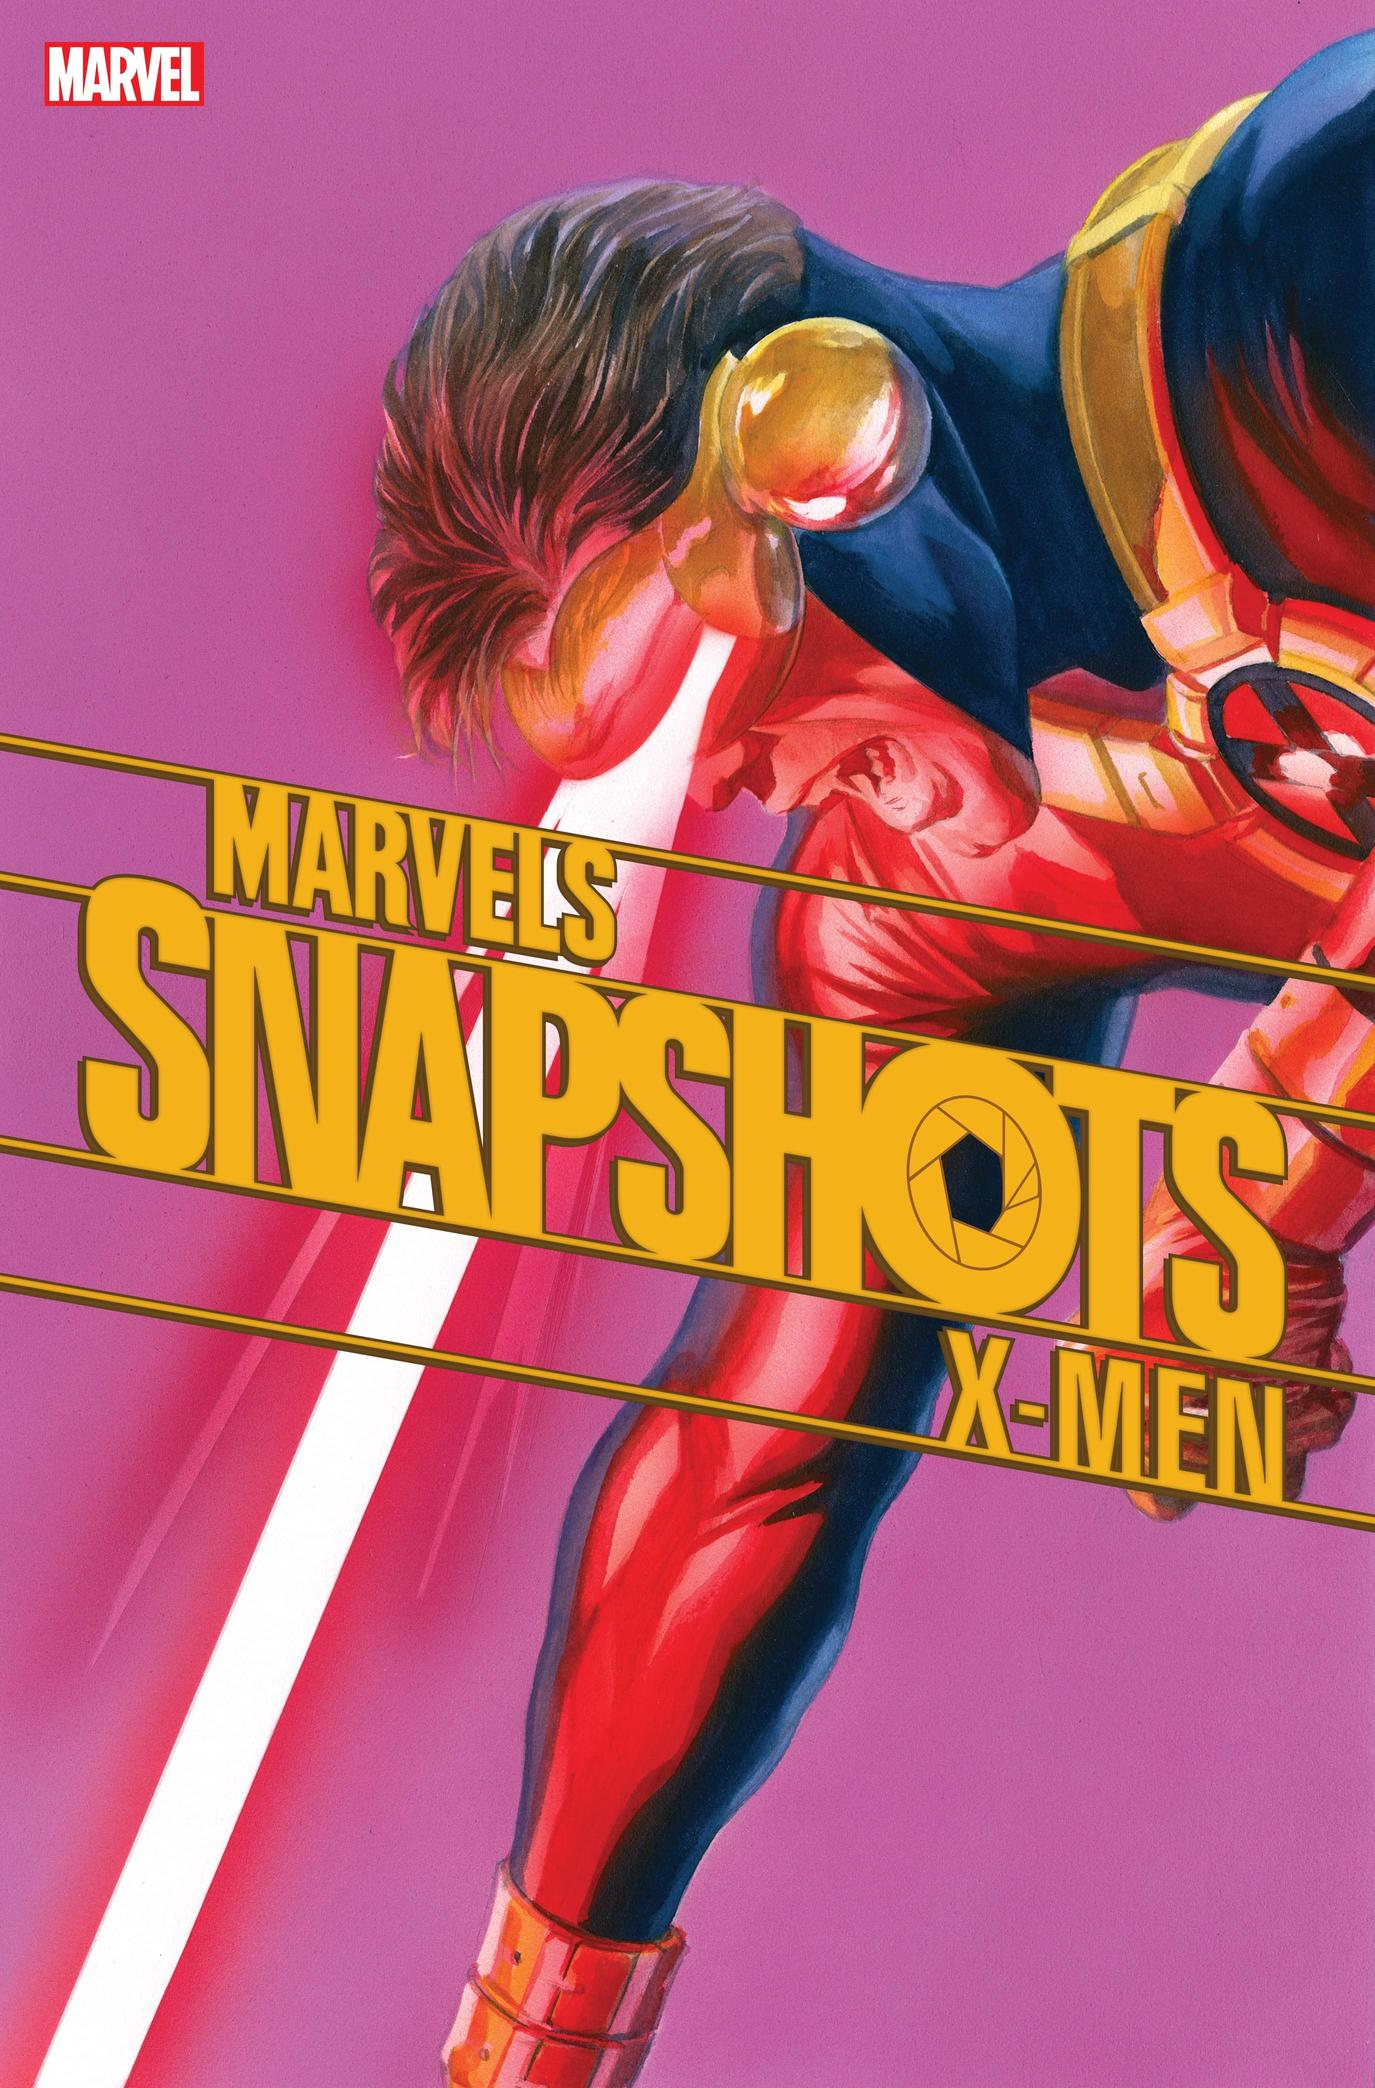 X-MEN: MARVELS SNAPSHOTS #1 cover by Alex Ross